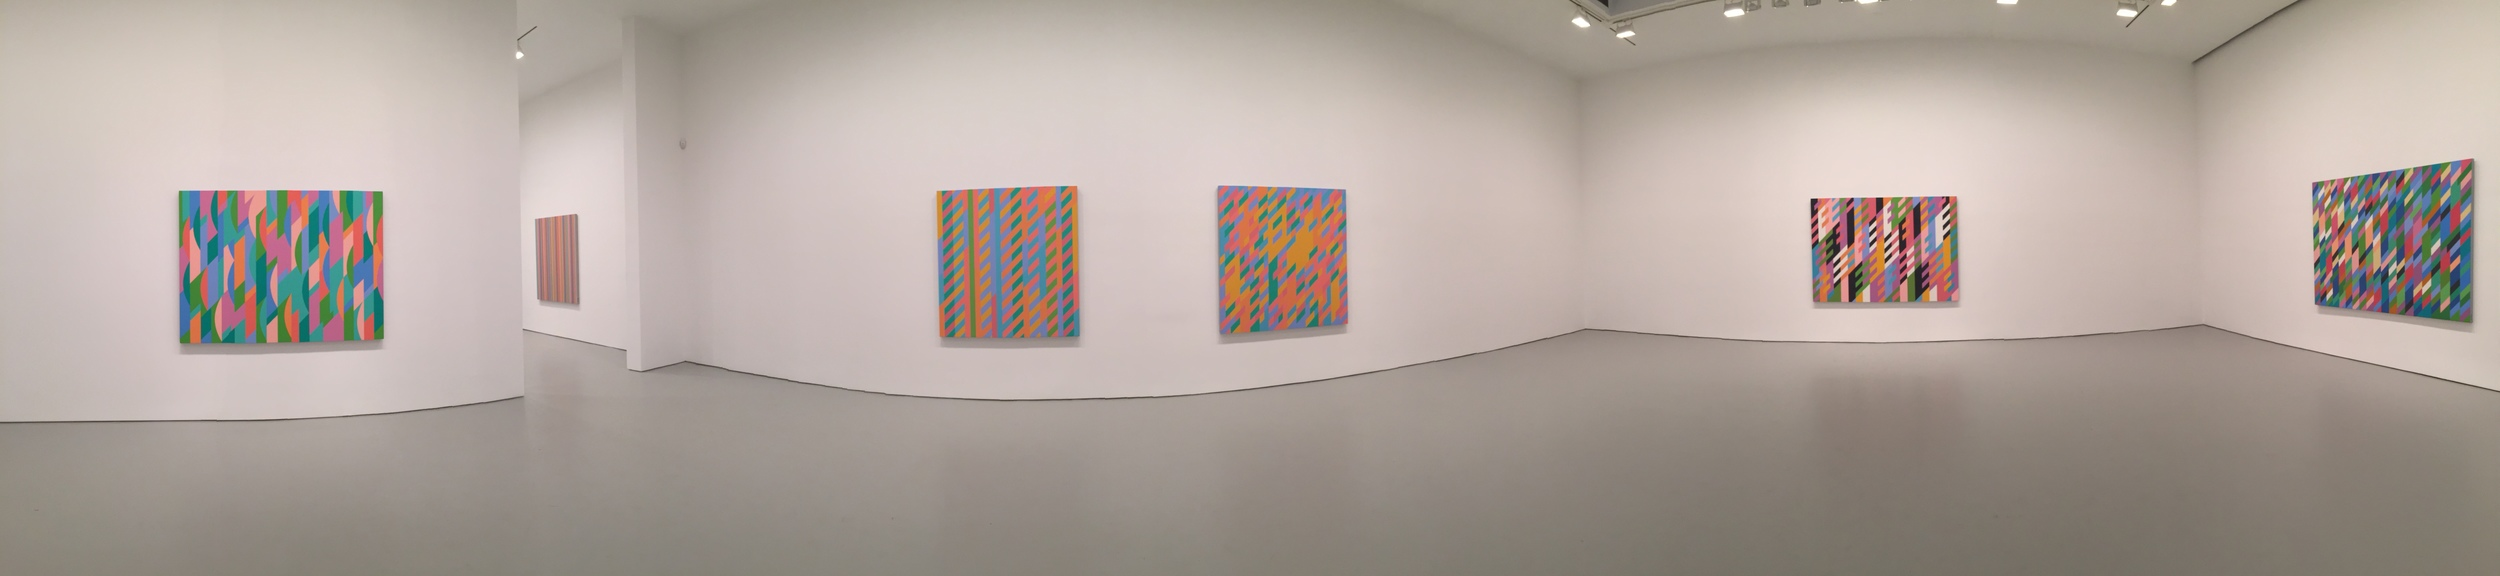 Exhibition Image, Bridget Riley, David Zwirner, New York Photo Credit: Cincala Art Advisory